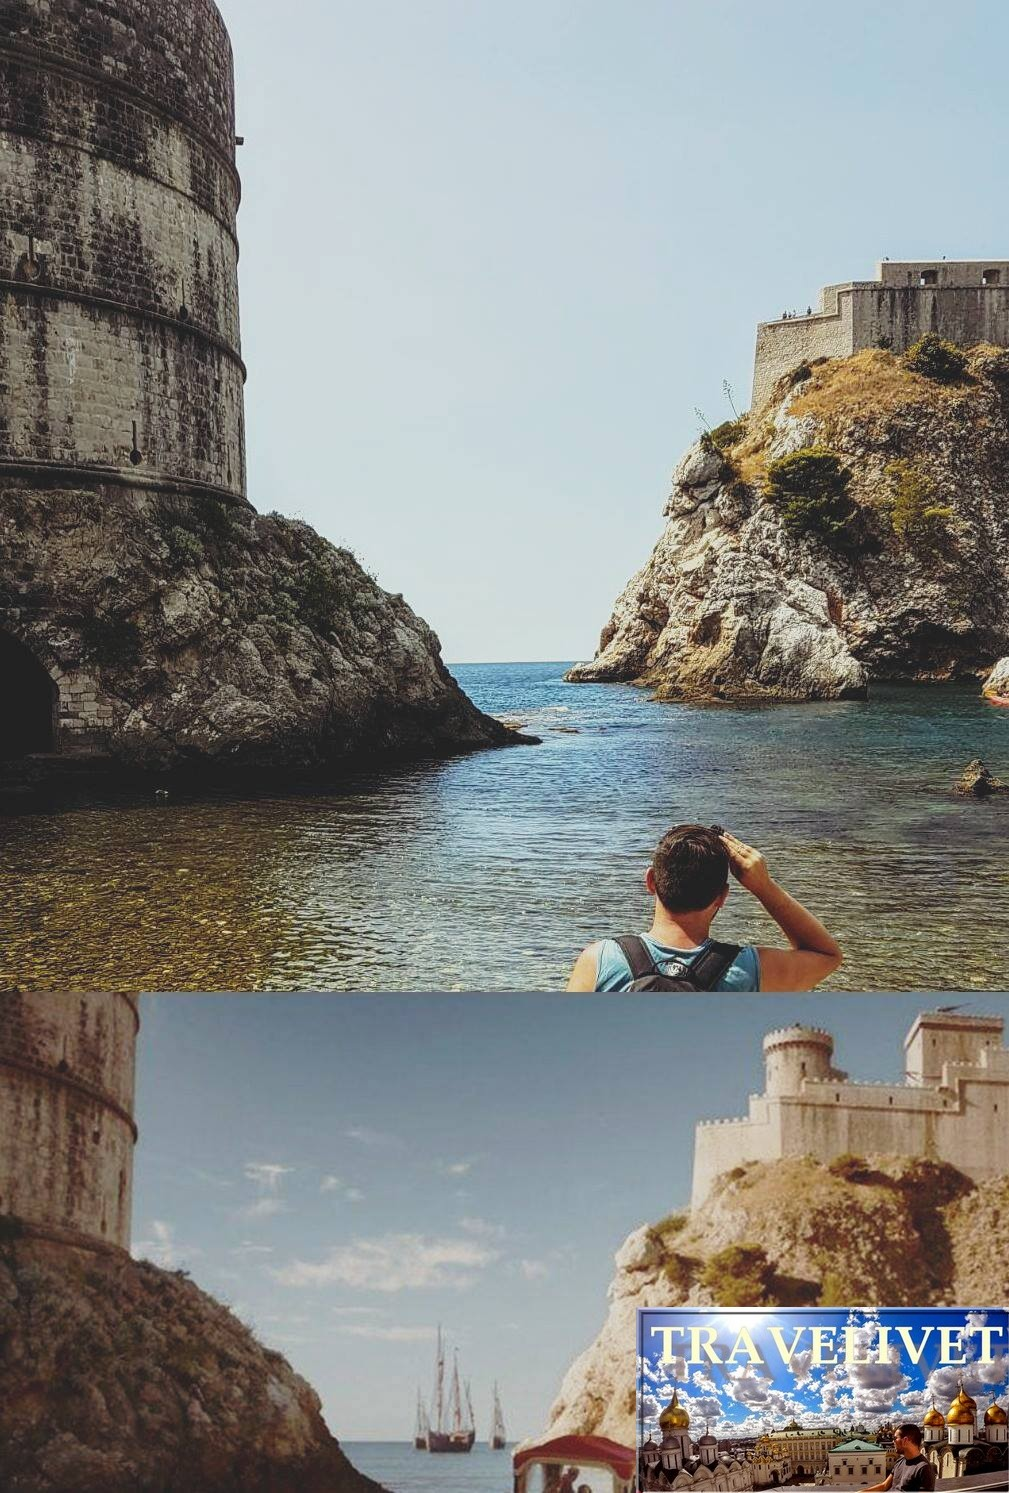 Game of thrones filming location lieu de tournage Croatie Dubrovnik